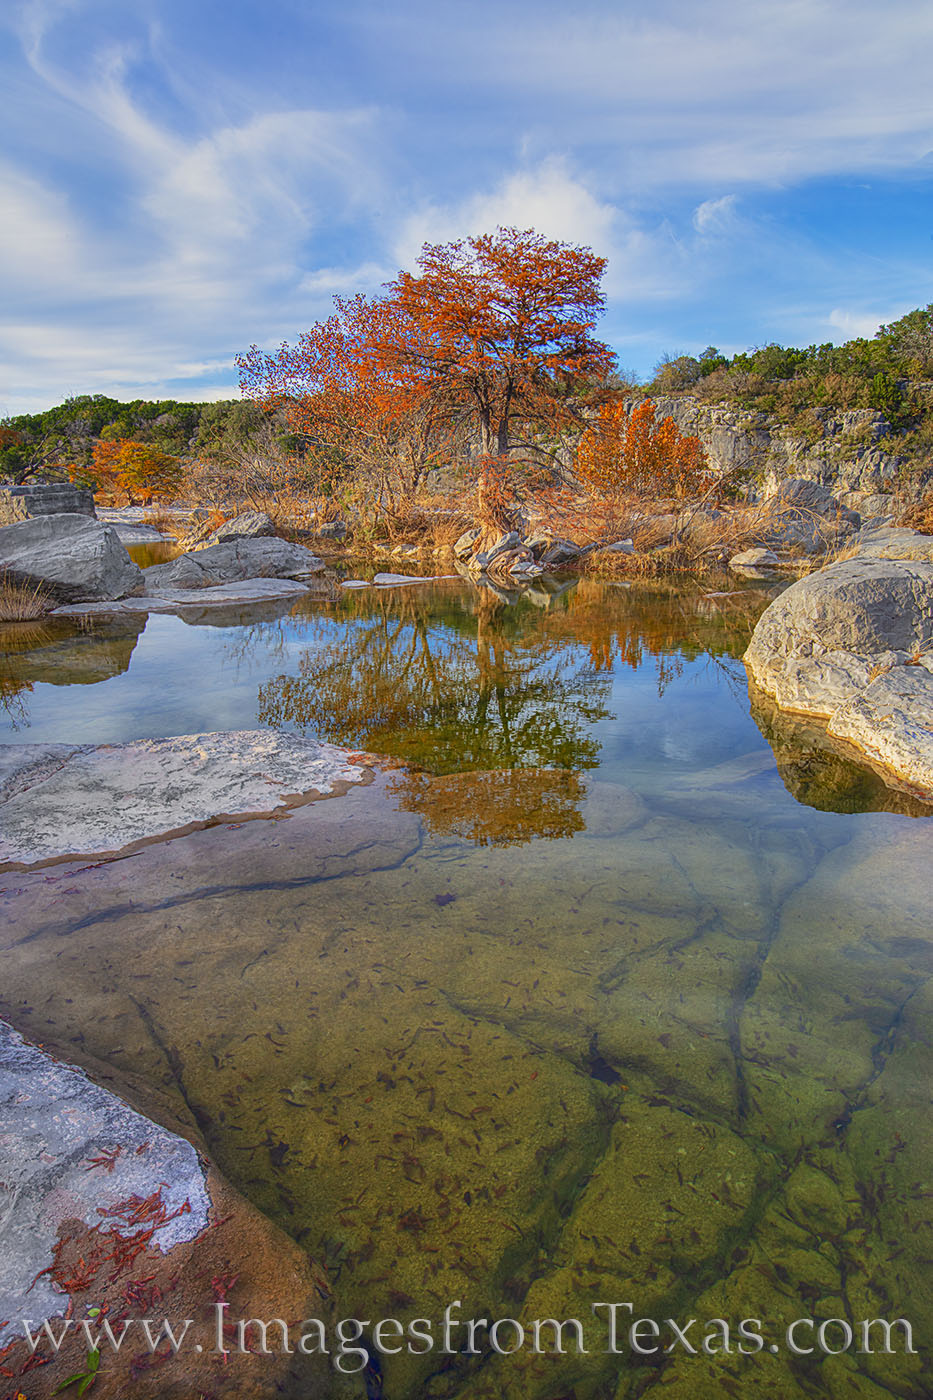 pedernales falls, pedernales river, pedernales falls state park, texas hill country, autumn, autumn color, November, cypress, pool, water, reflection, sunset, evening, solitude, photo